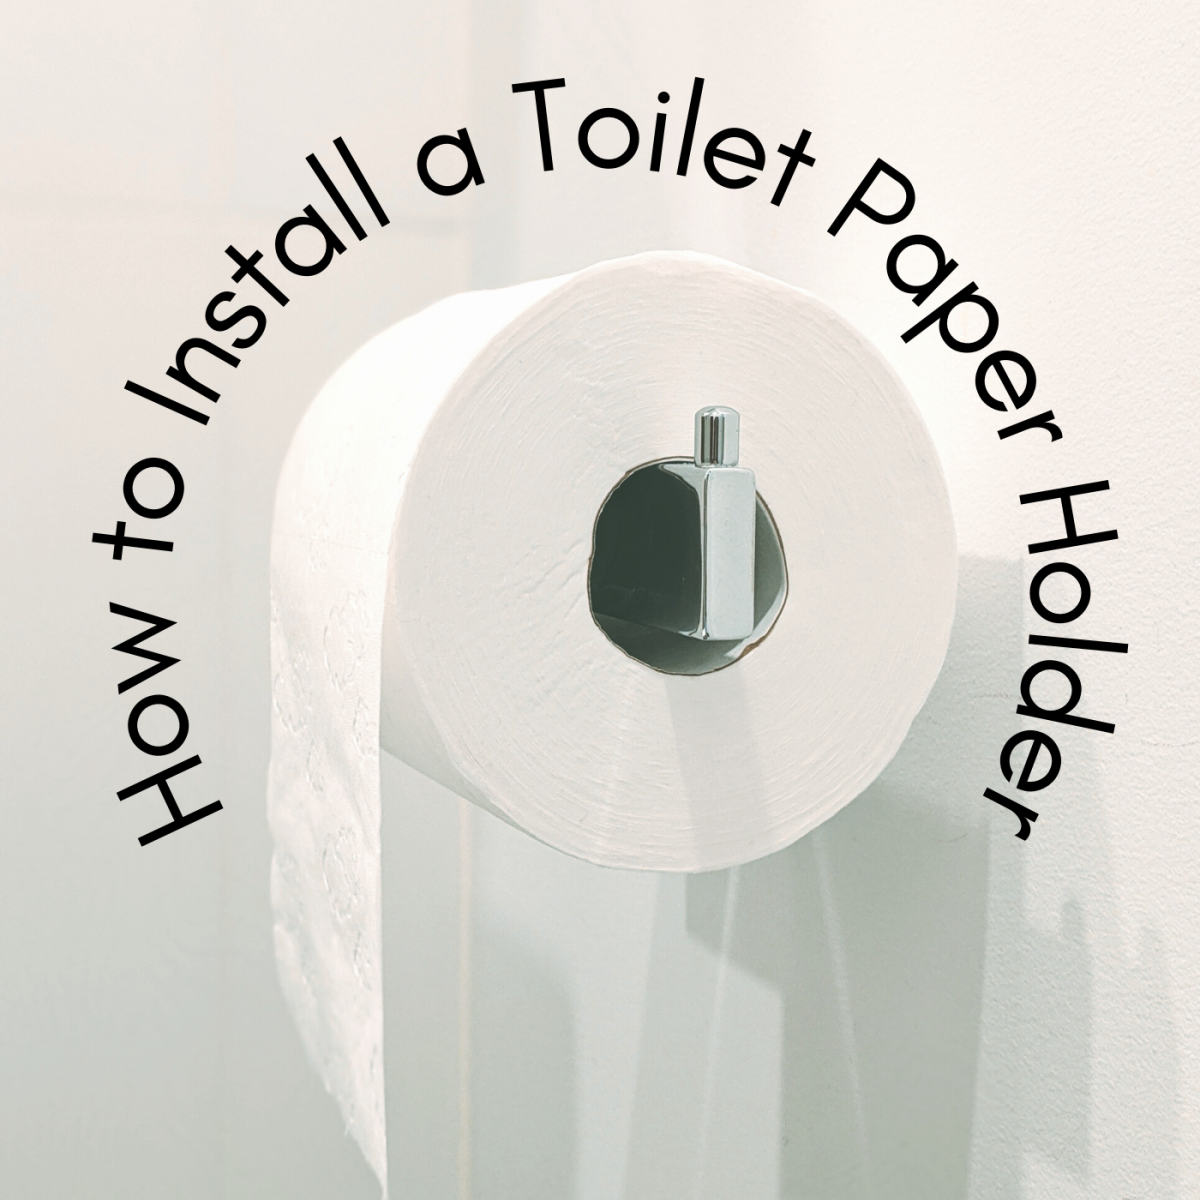 How to install a toilet paper holder.